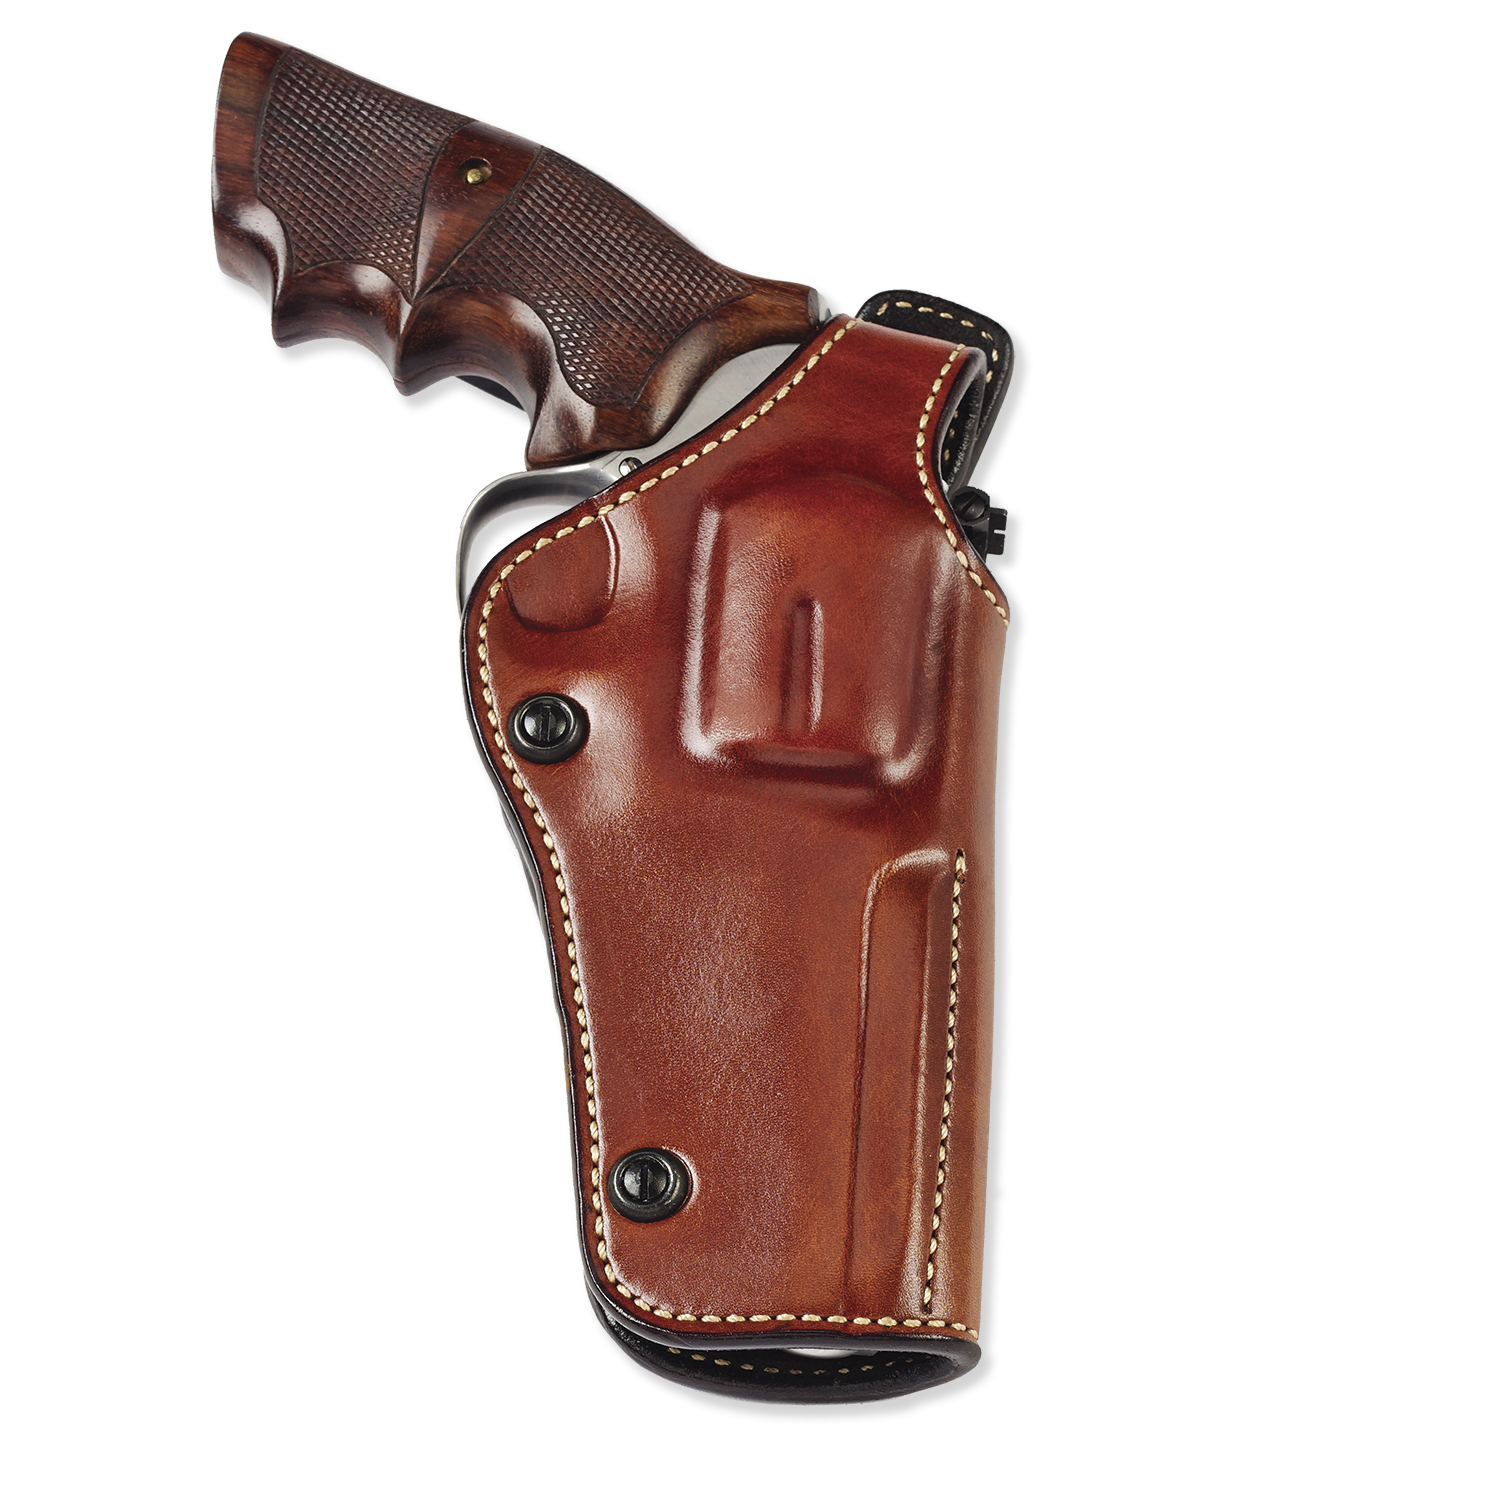 Galco Phoenix 4 Inch Revolver Holster Fits: Colt, Dan Wesson, Ruger GP100,  Smith & Wesson L Frame, Tauras (PHX104)